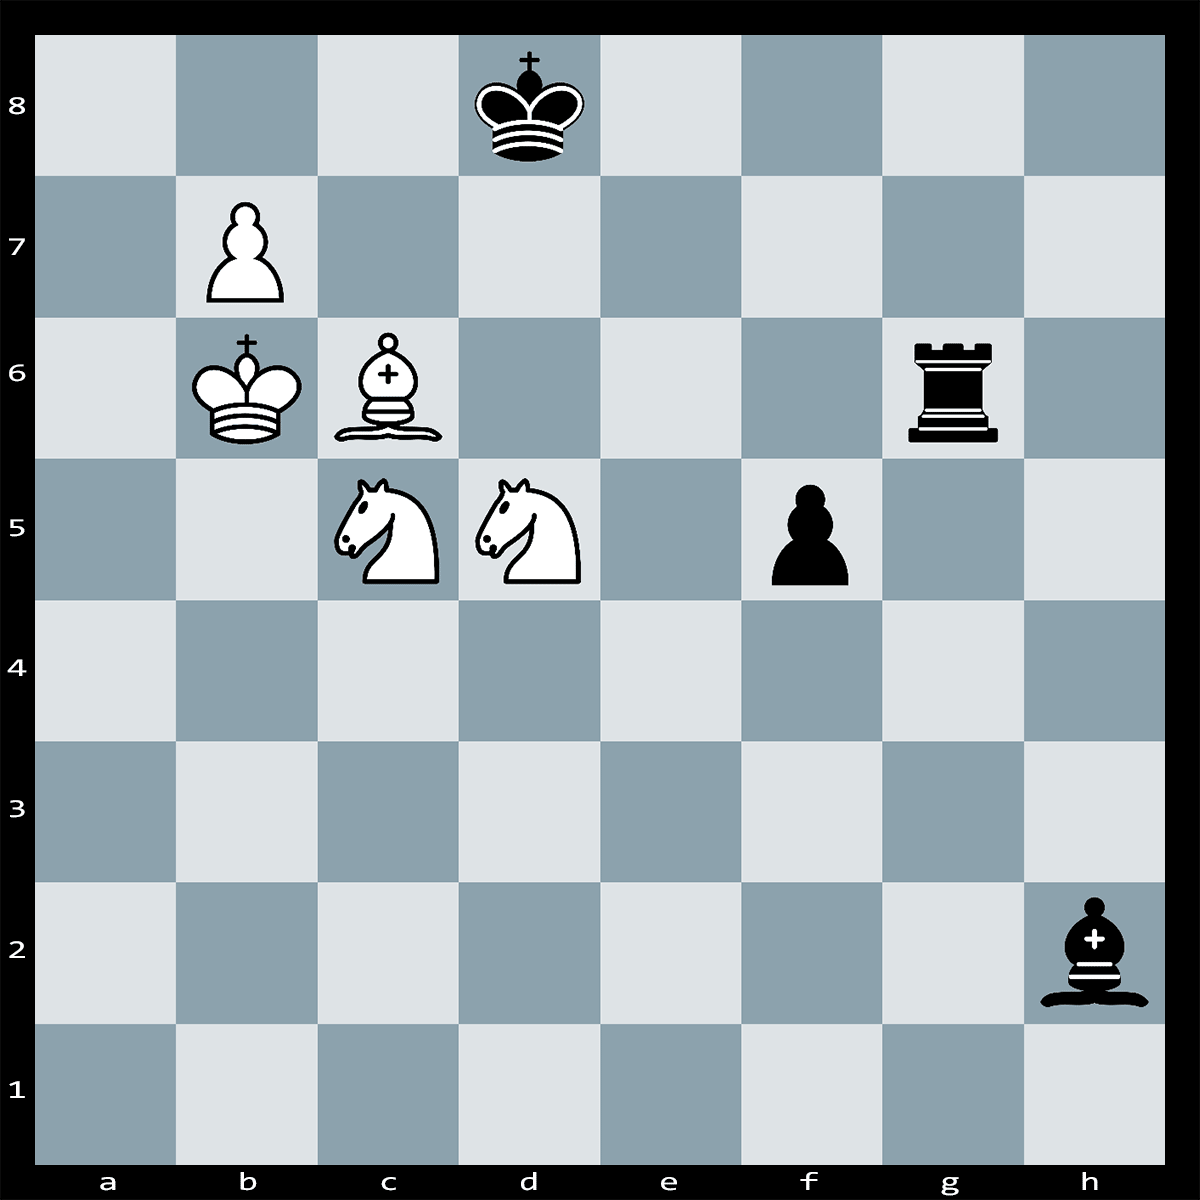 Chess Puzzle #289 | White has a winning move here. Can you spot it? Checkmate in Three Moves, White to Play.